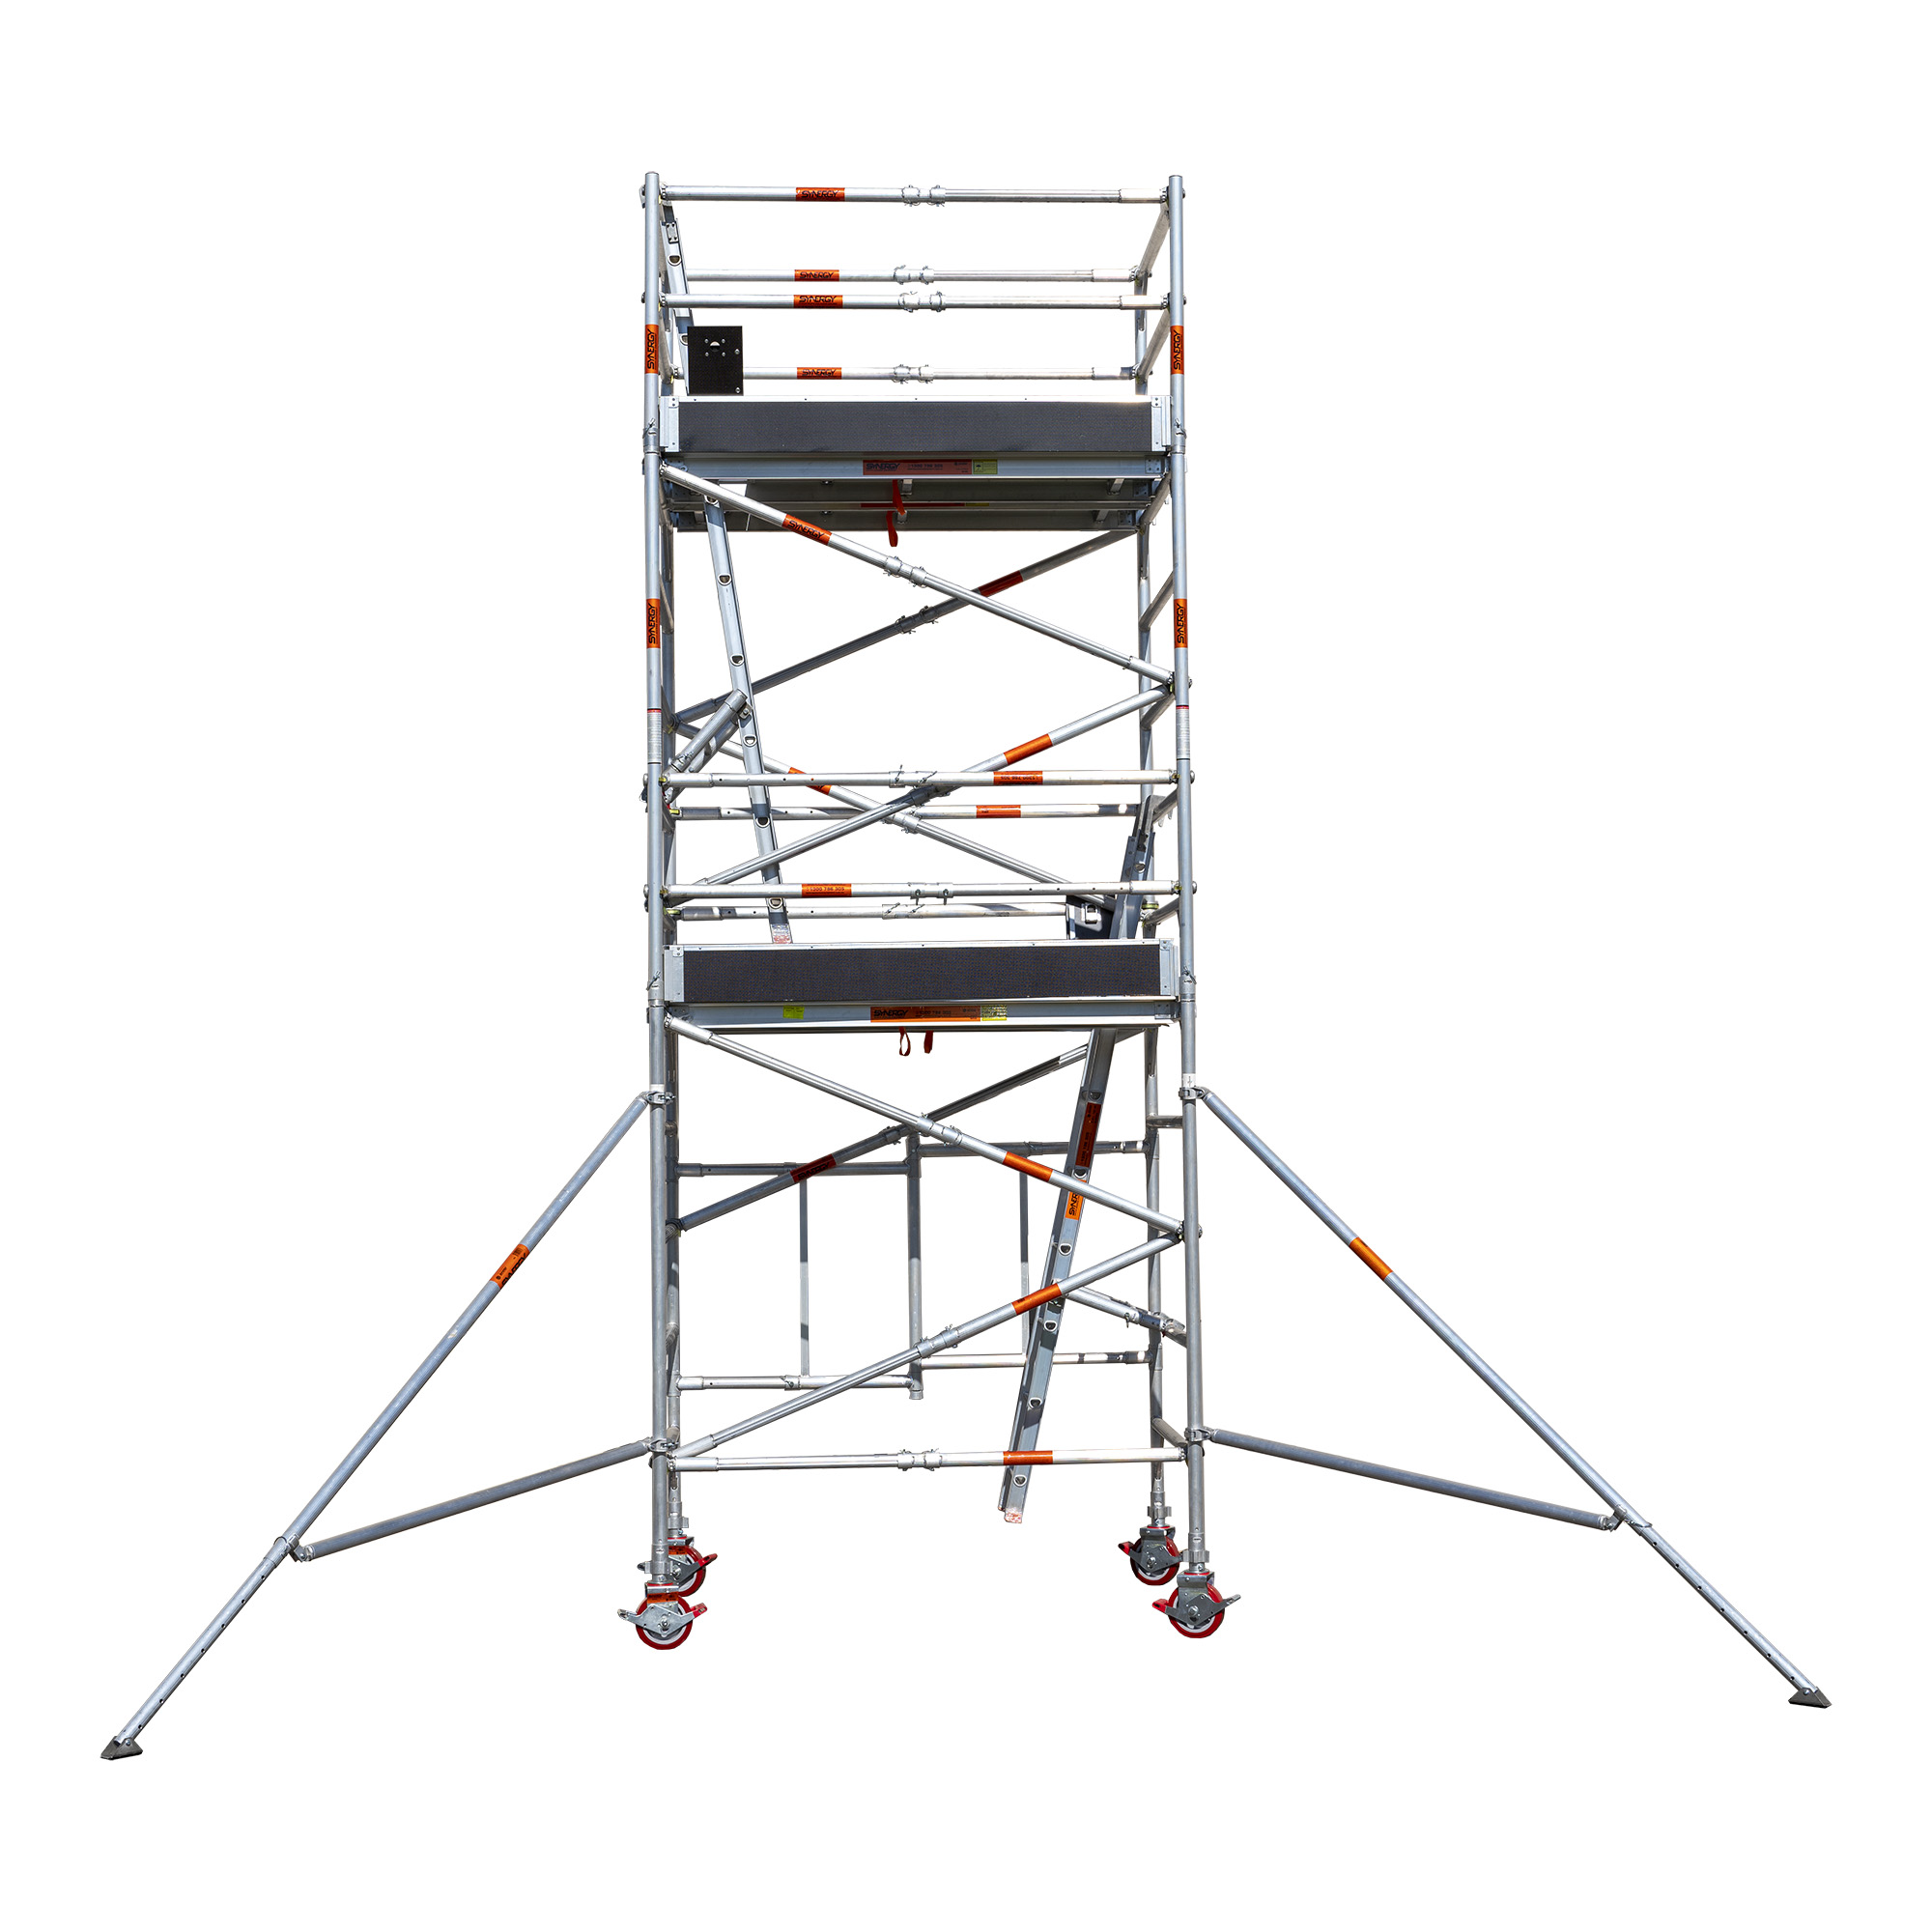 Aluminium Foldable Extendable Wide Scaffold 4.2m (Height) 1.2m - 2.0m (Scaffold Length)